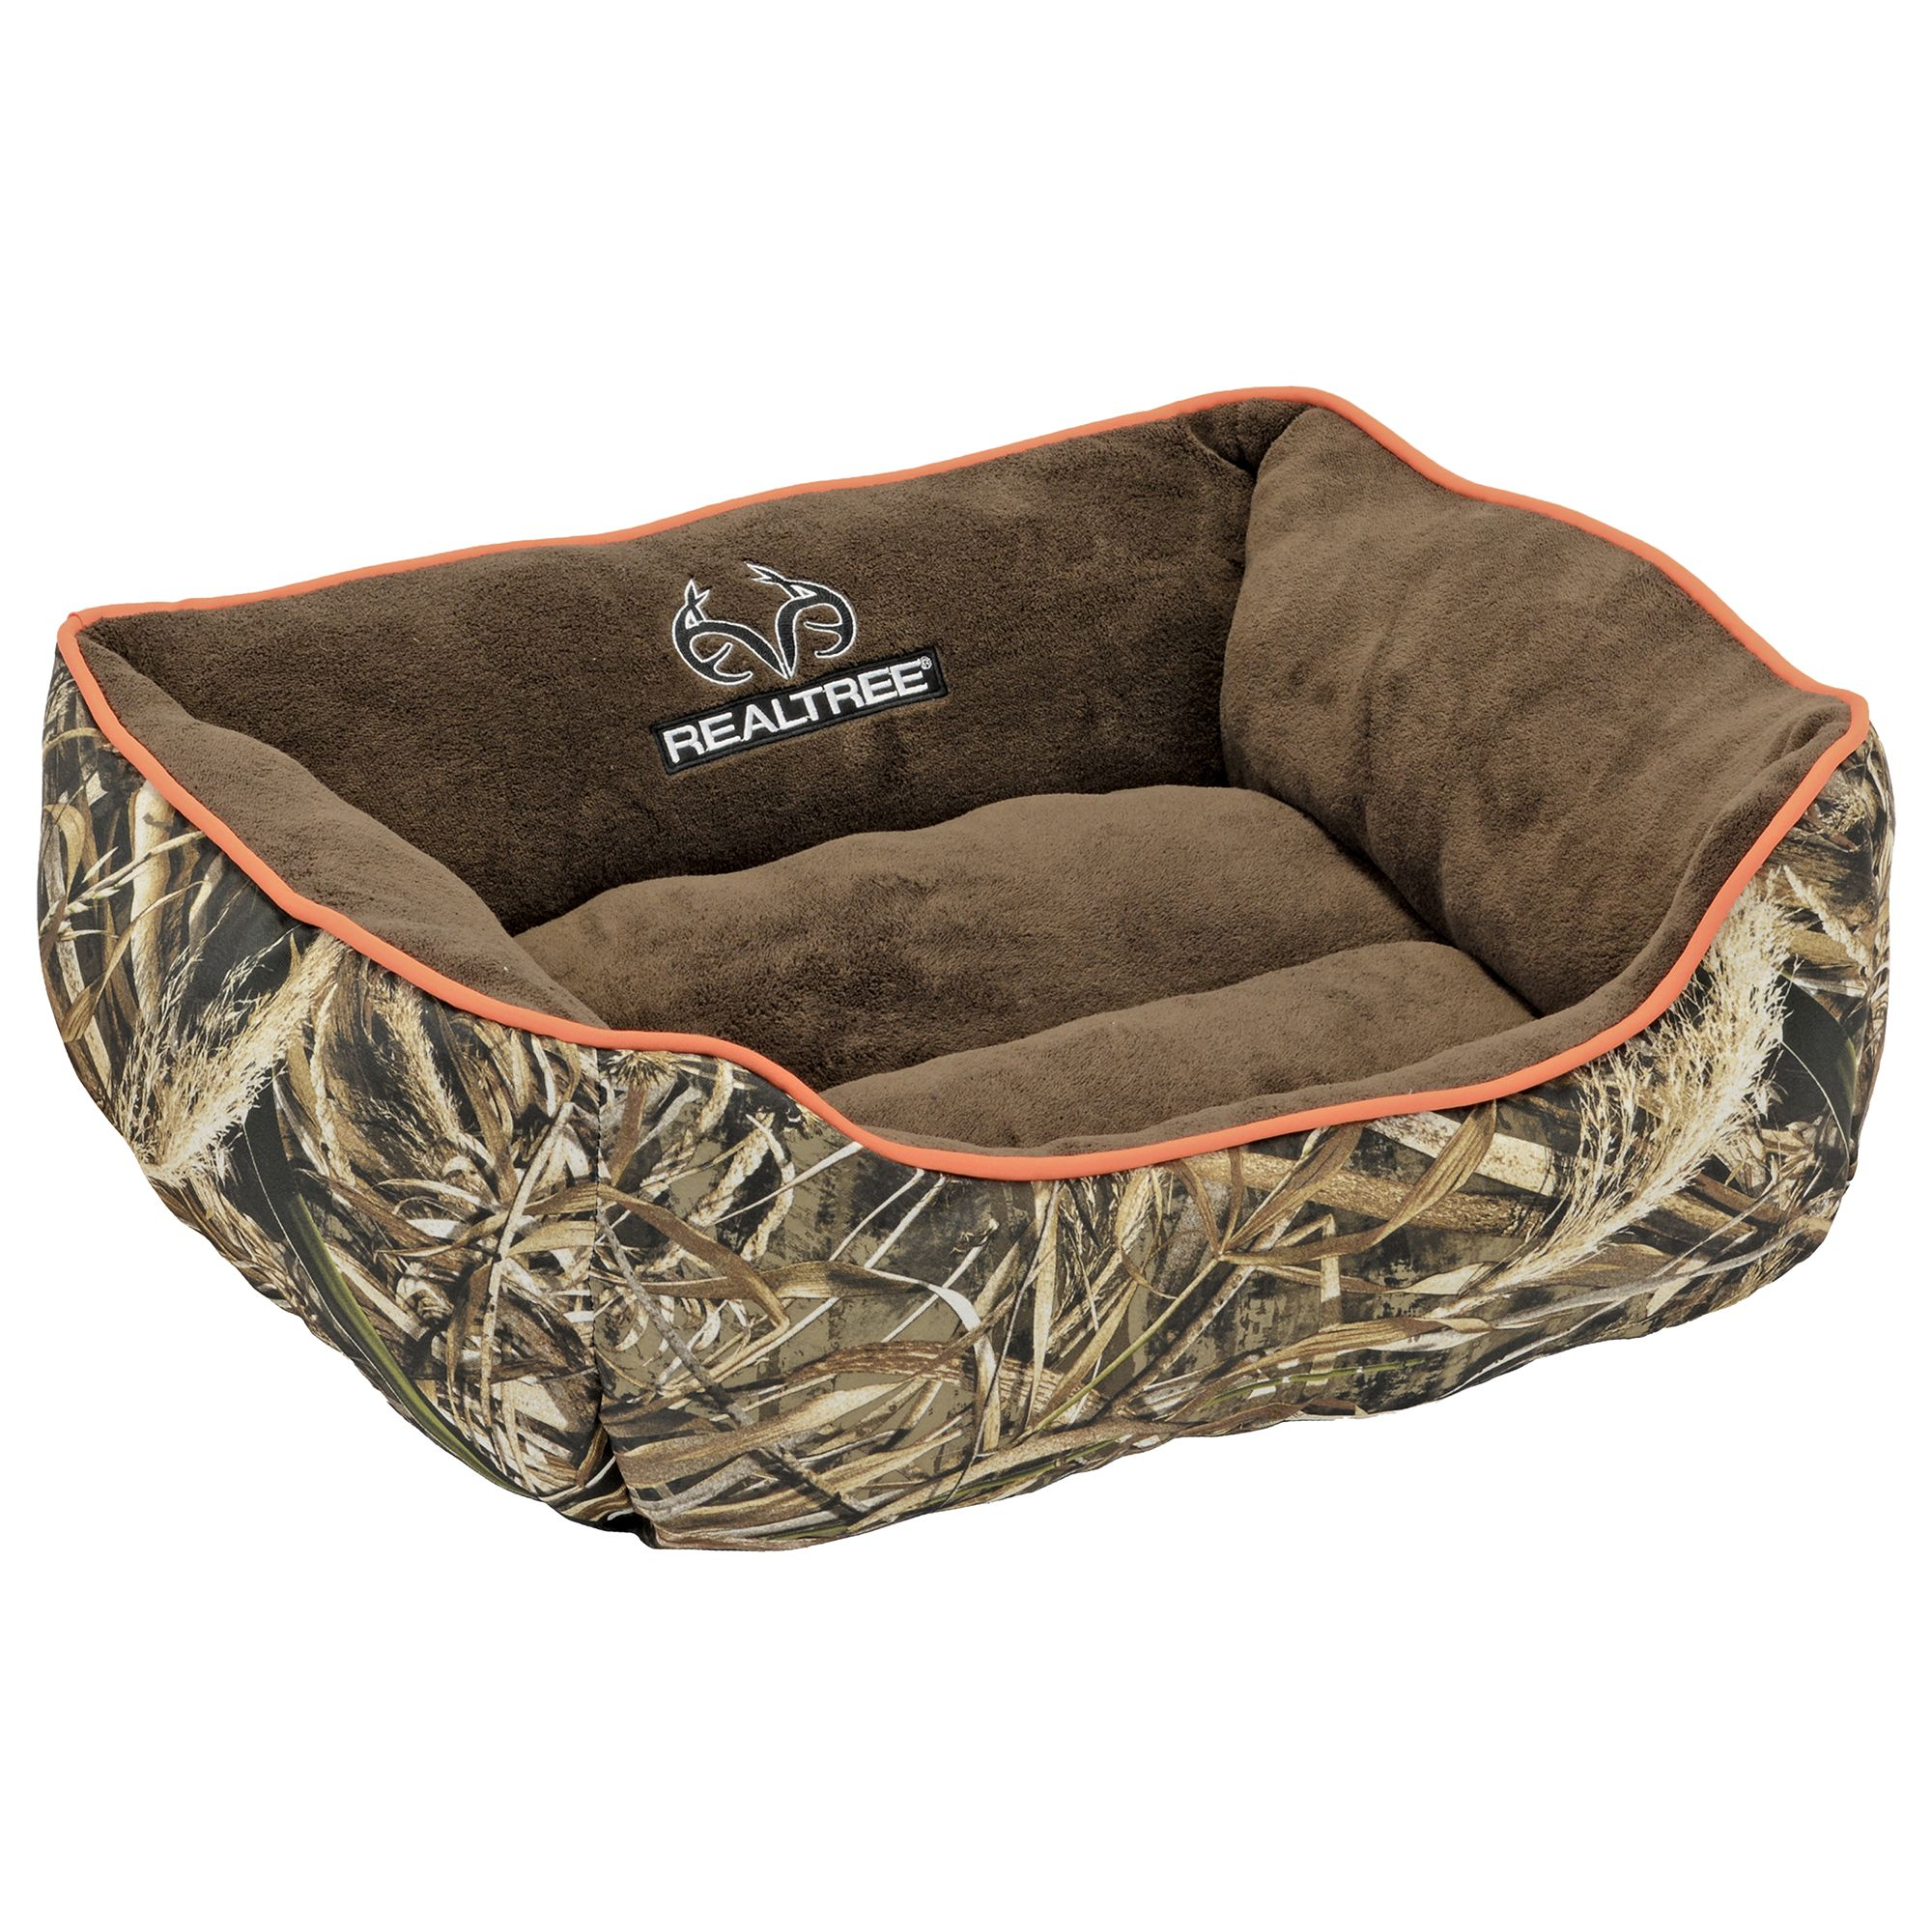 Realtree Camo Cuddler Dog Bed Size 18l X 14w Orange